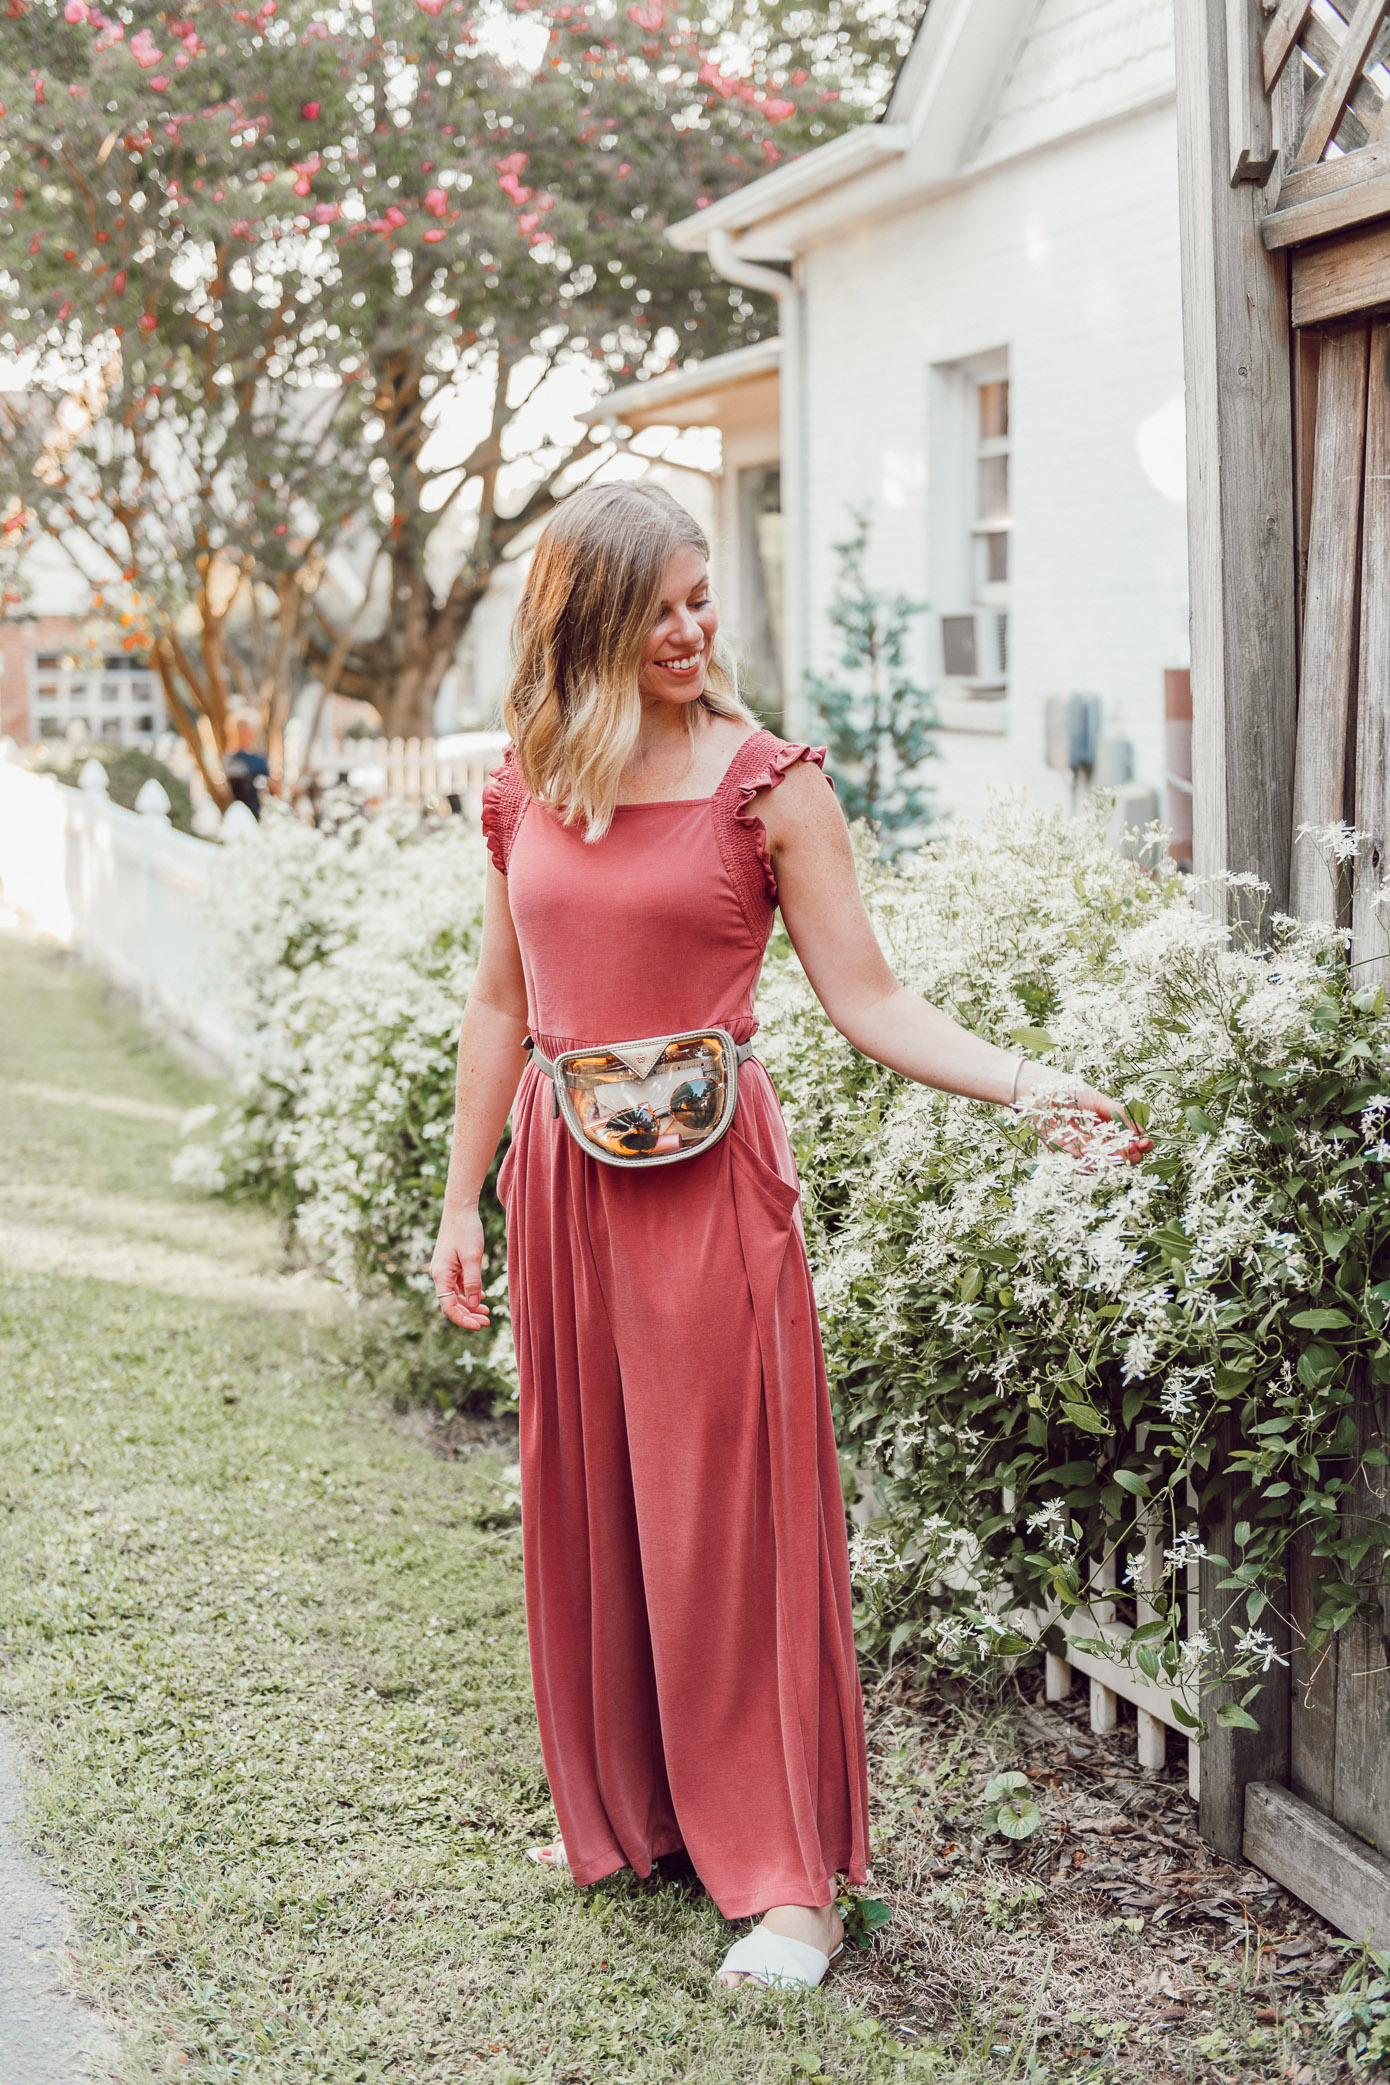 Kicking a Bad Habit and Starting the Day Off in a Good Mood | Terra-cotta Jumpsuit, Jumpsuit for Fall, Clear Belt Bag | Louella Reese